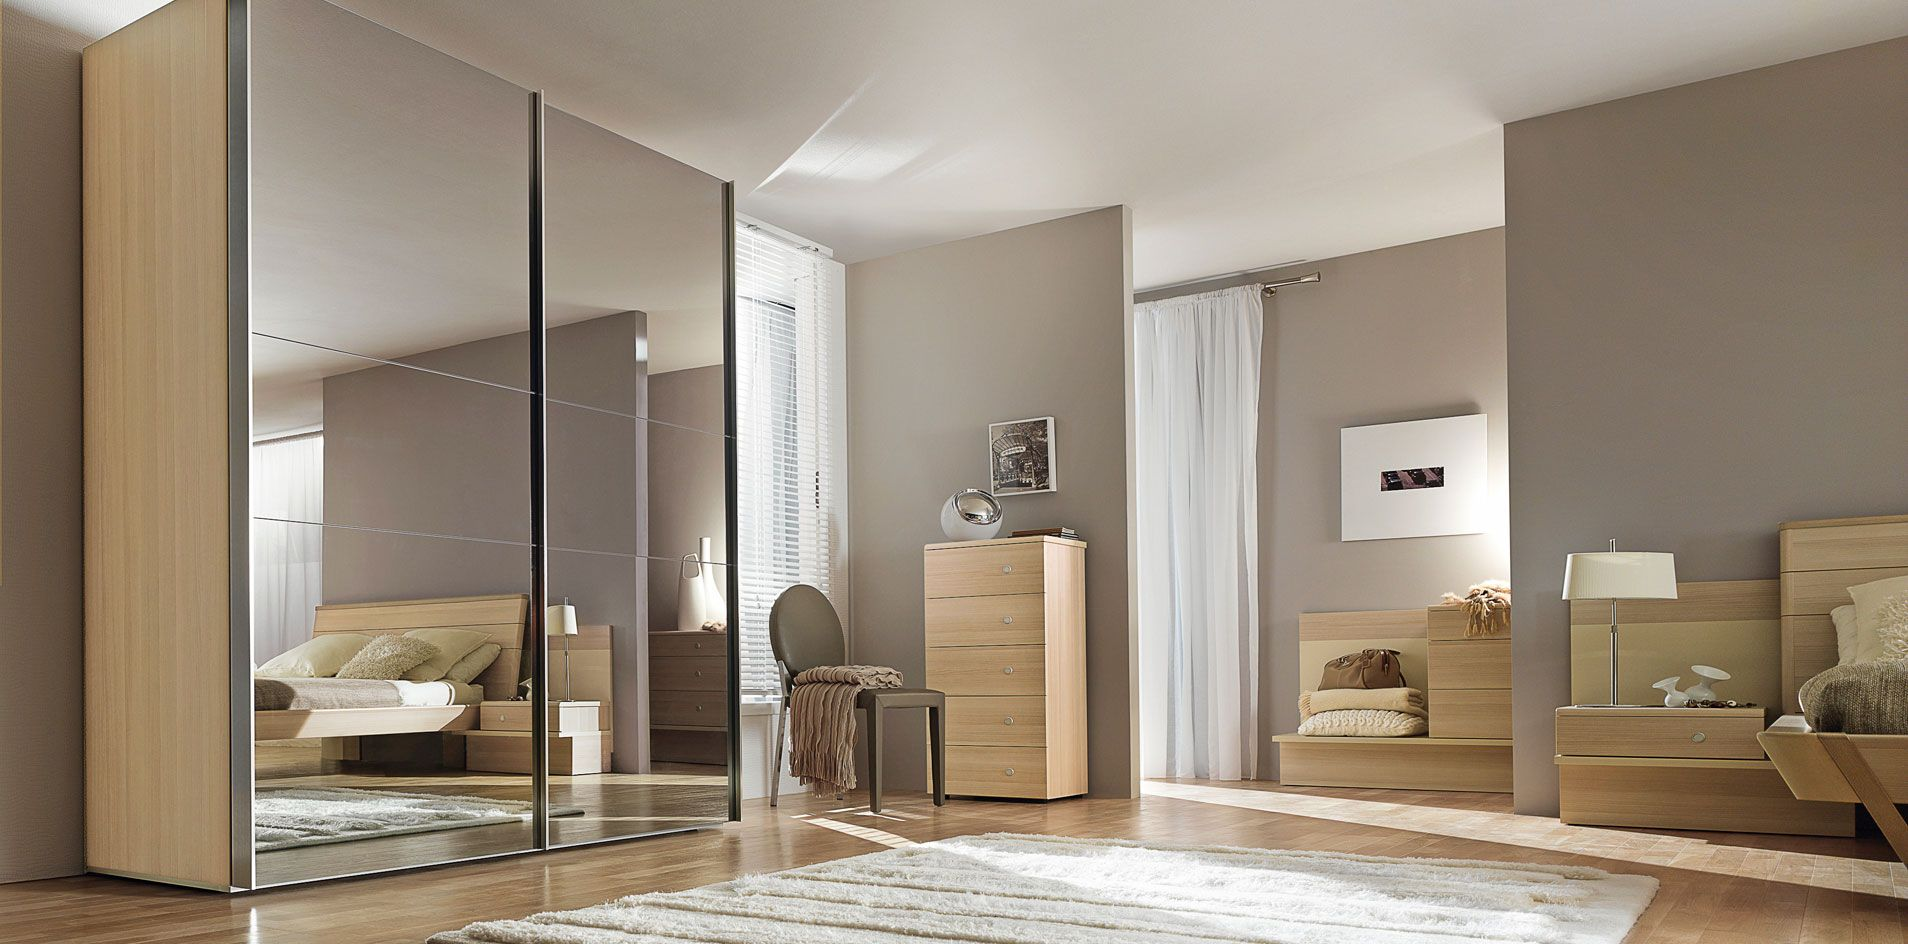 sliding doors wardrobe dressing gautier furniture made in france for the. Black Bedroom Furniture Sets. Home Design Ideas